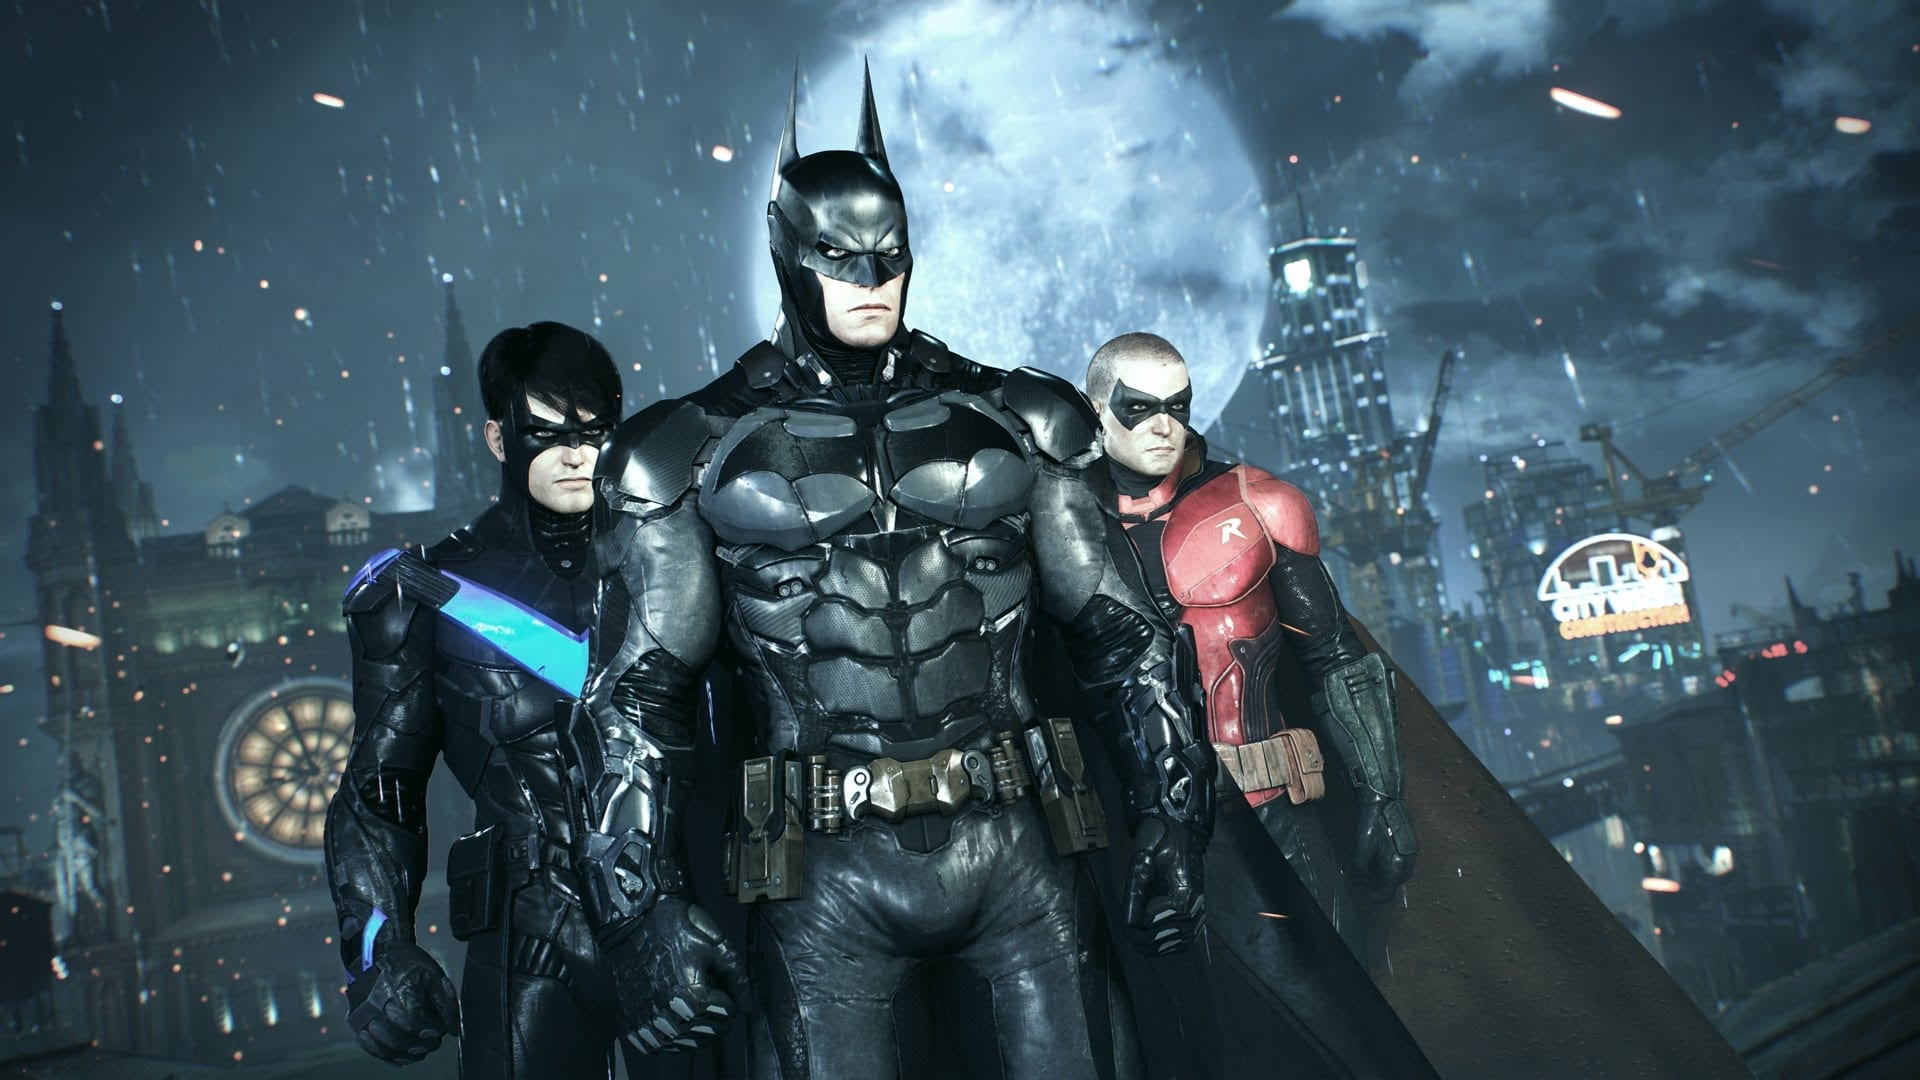 Plans For Justice League Game 'Accidentally Revealed' By Rocksteady Staff